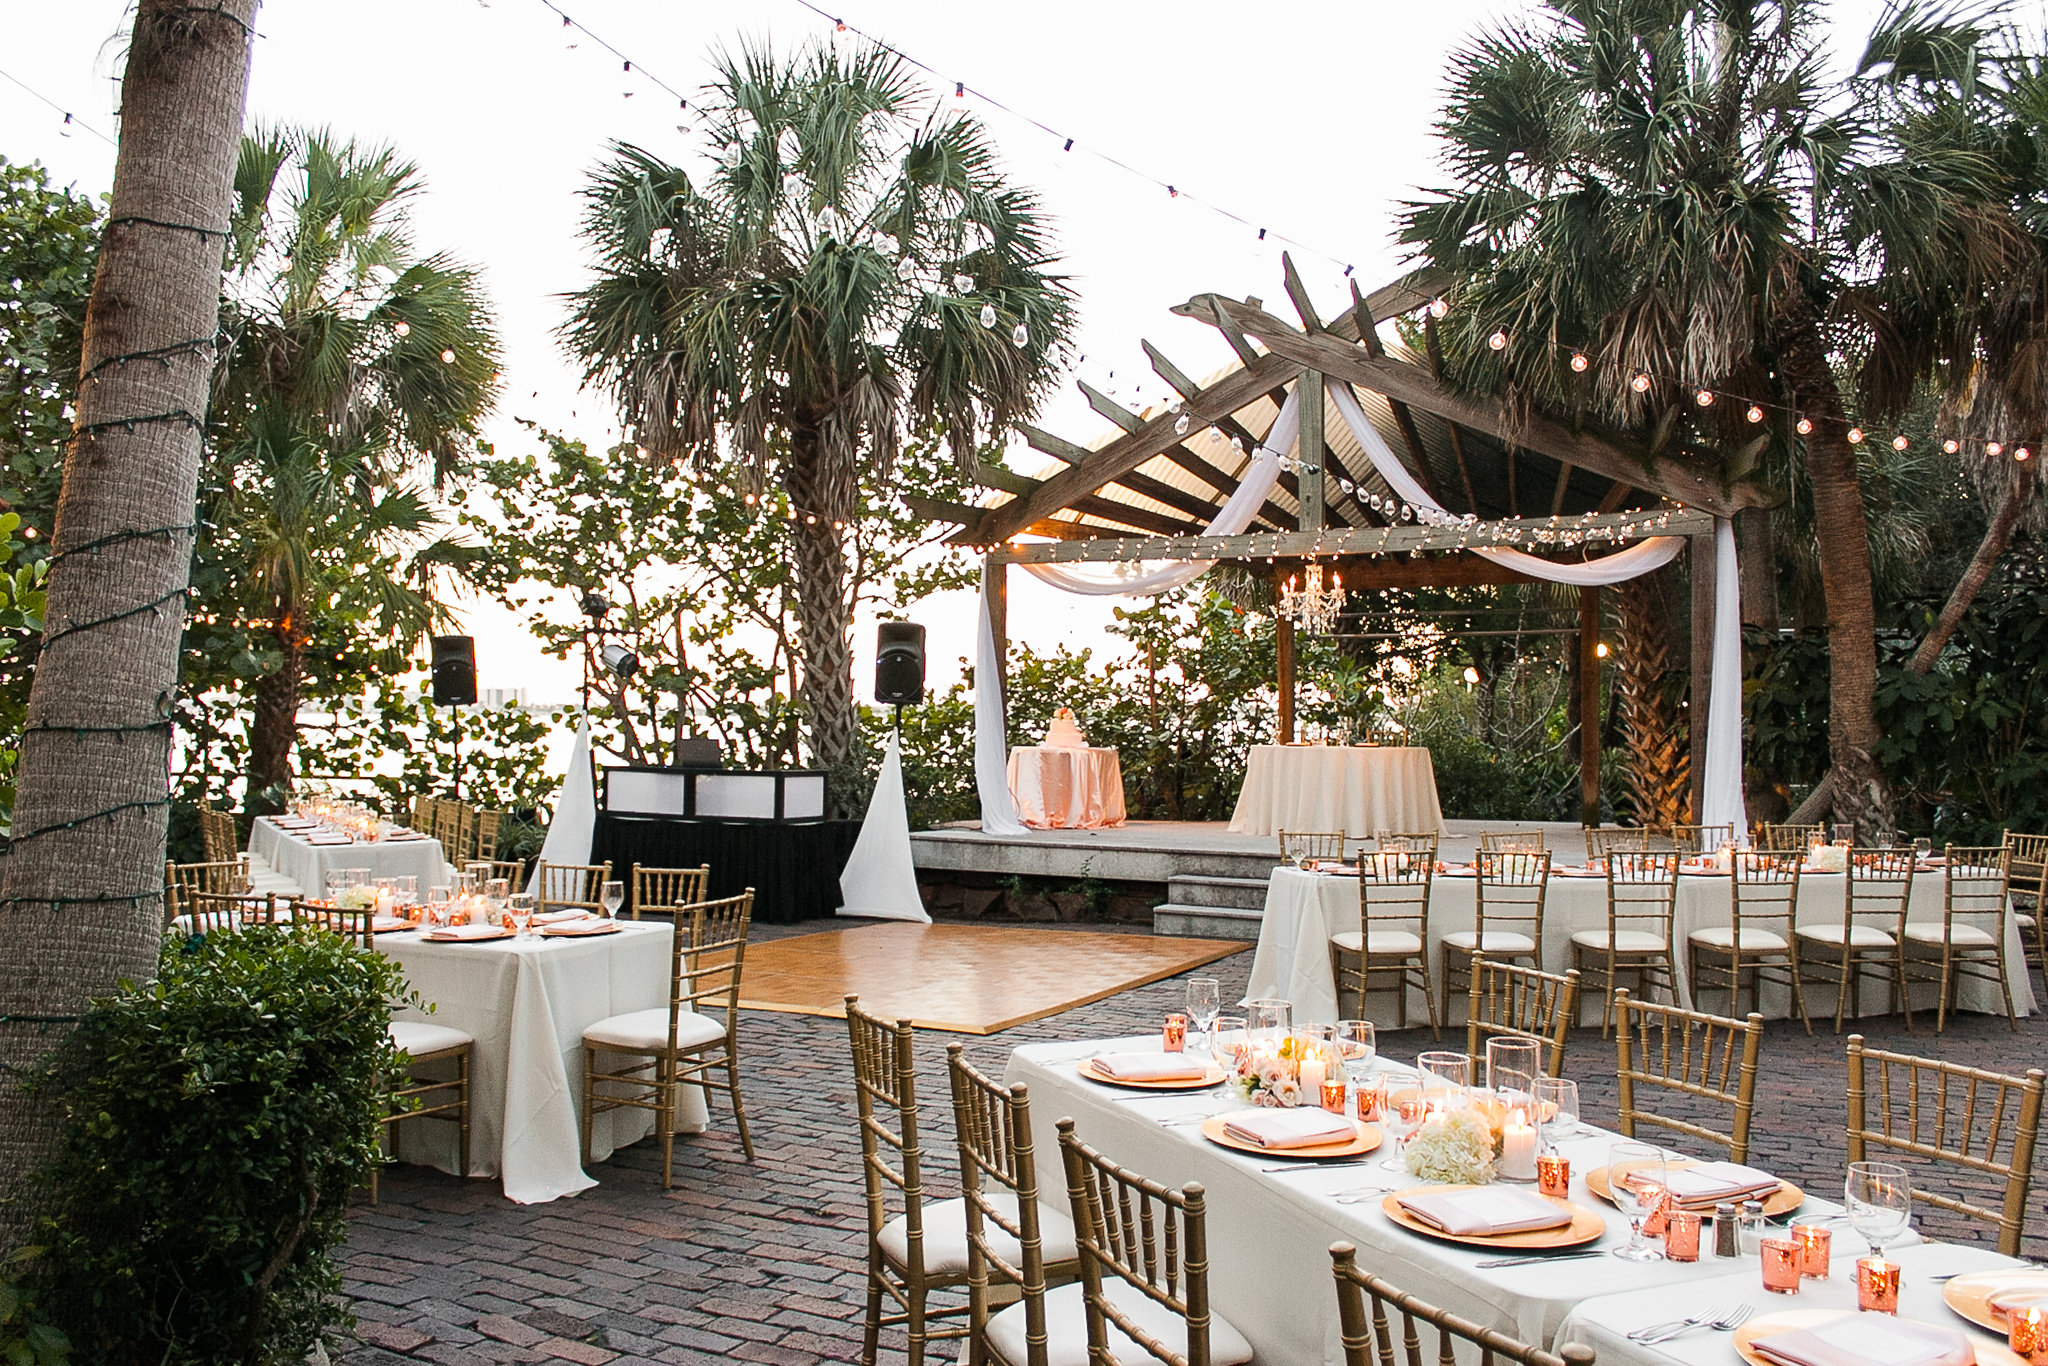 This-Good-Life-Photography-Sacred-Lands-Outdoor-Reception-St-Petersburg-Florida-Wedding-Photographer-127.jpg